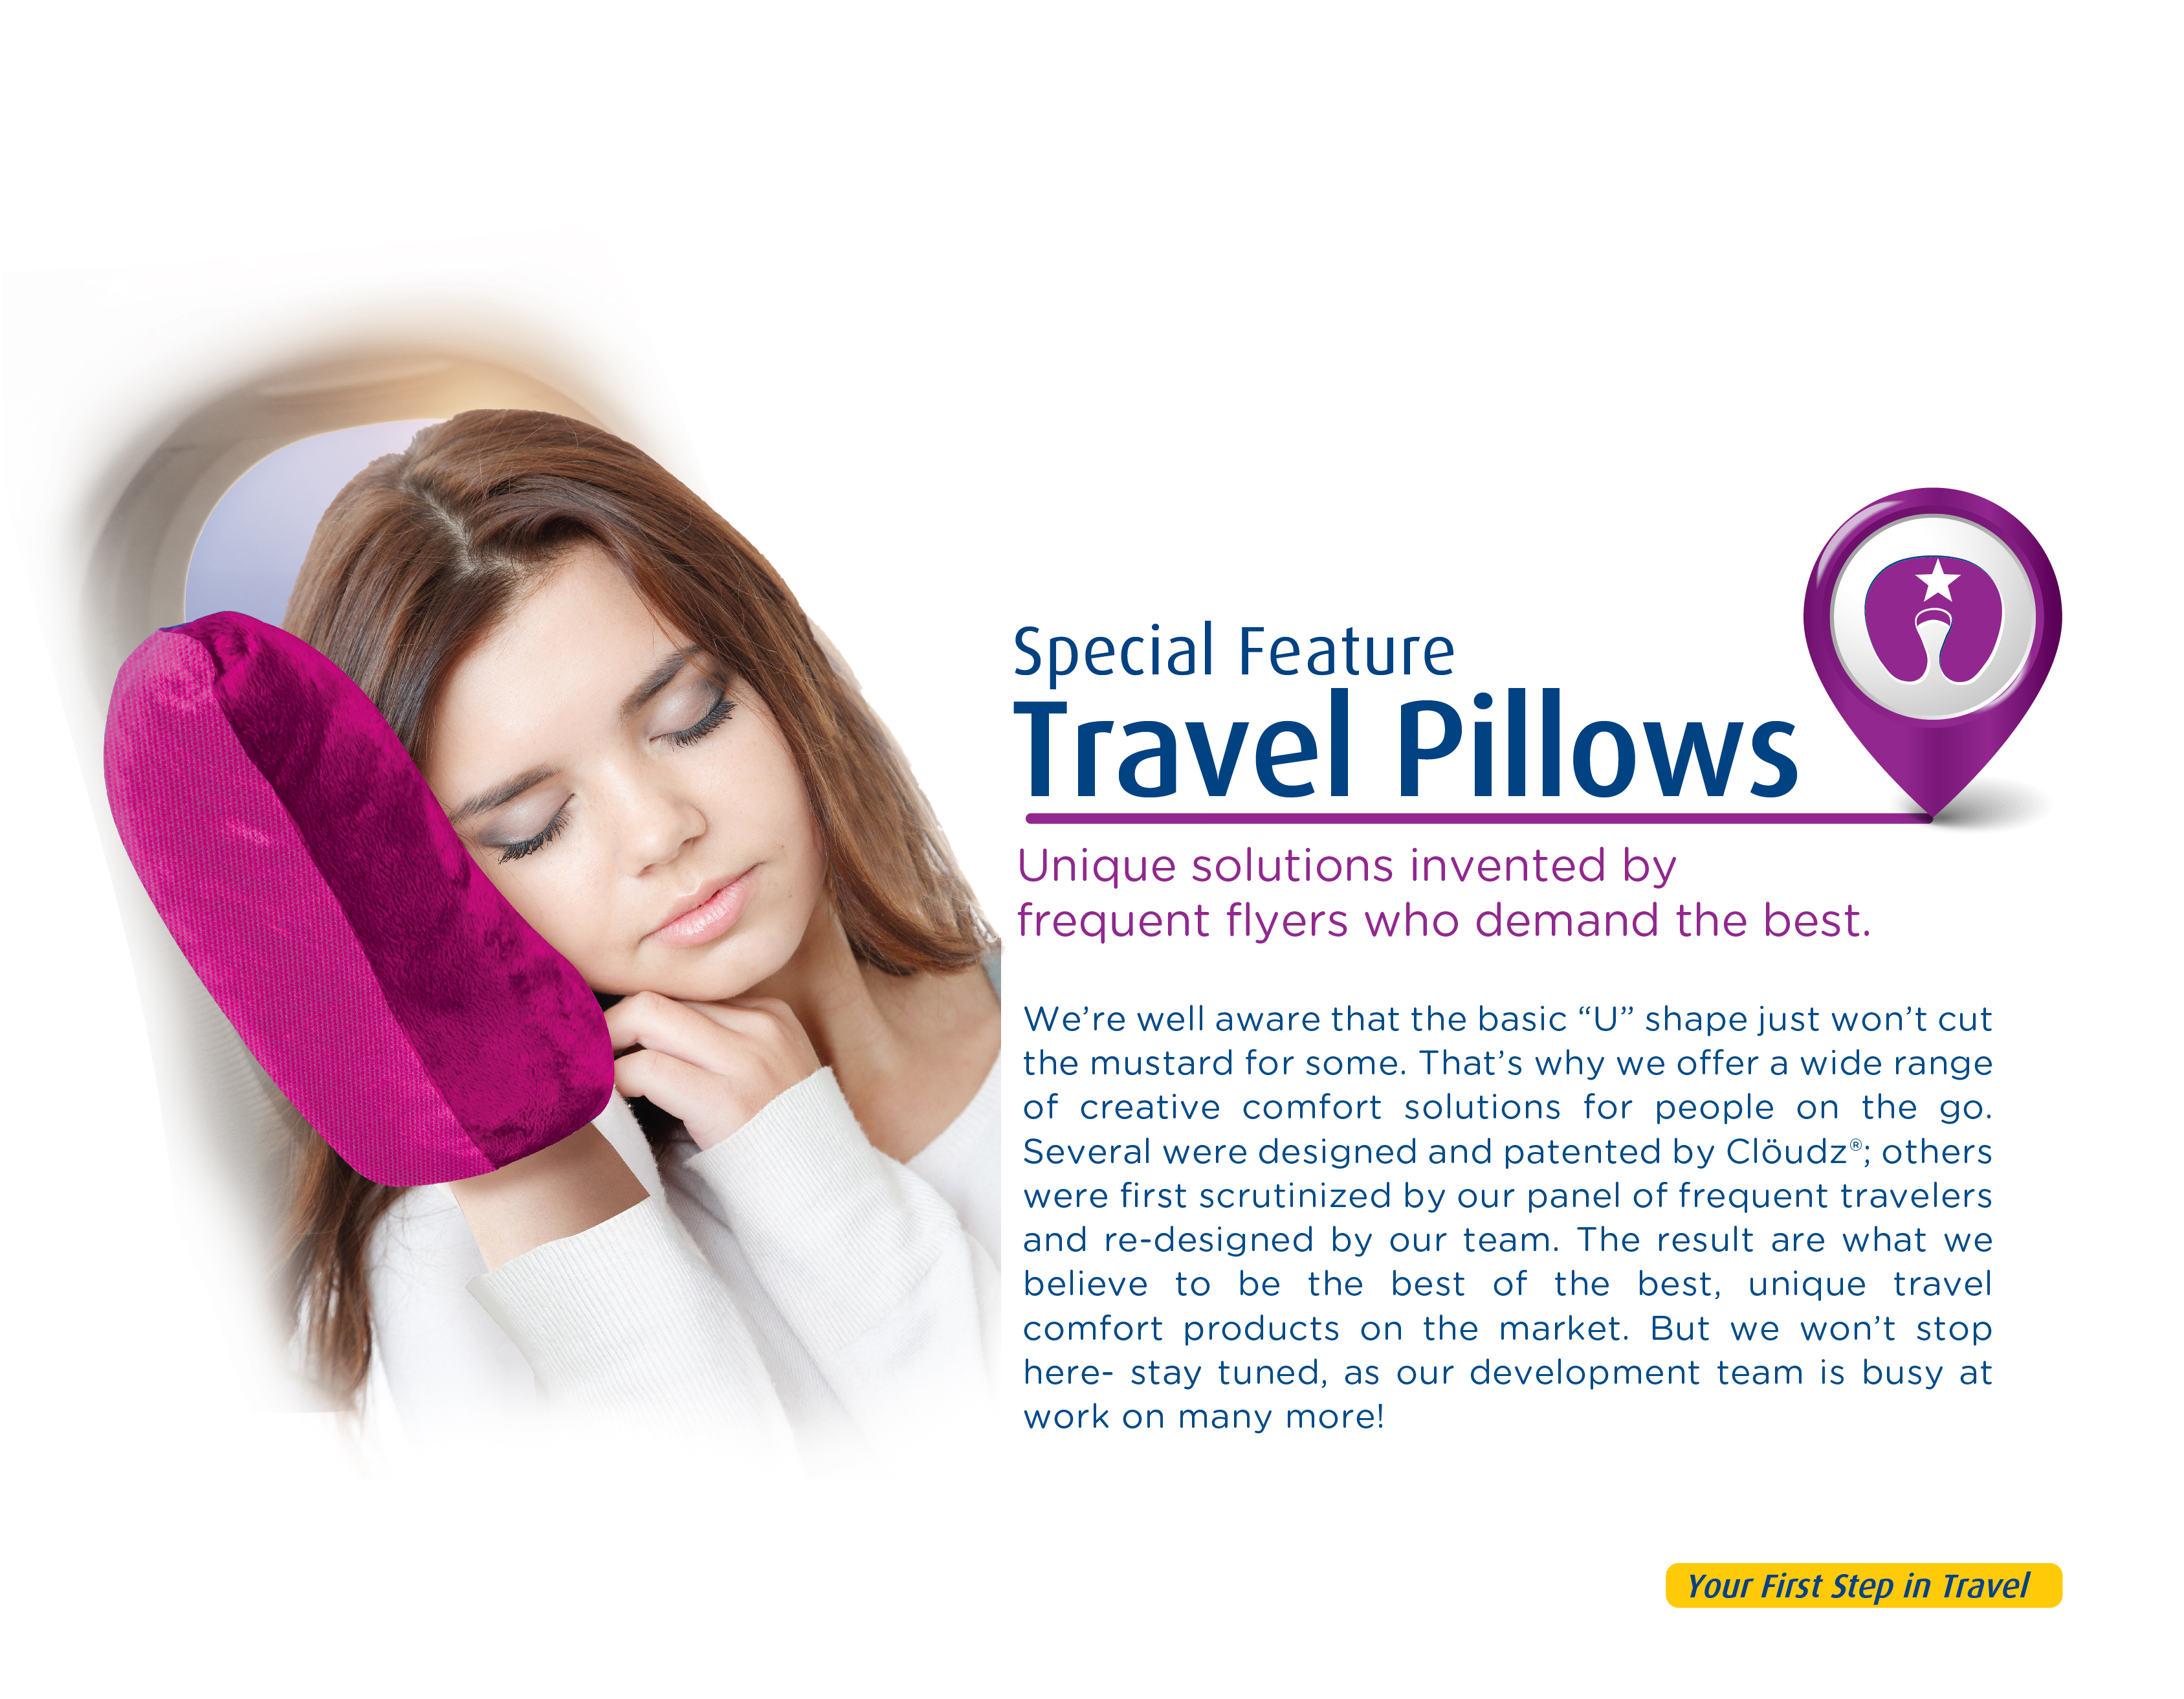 special_feature_pillow_section-01